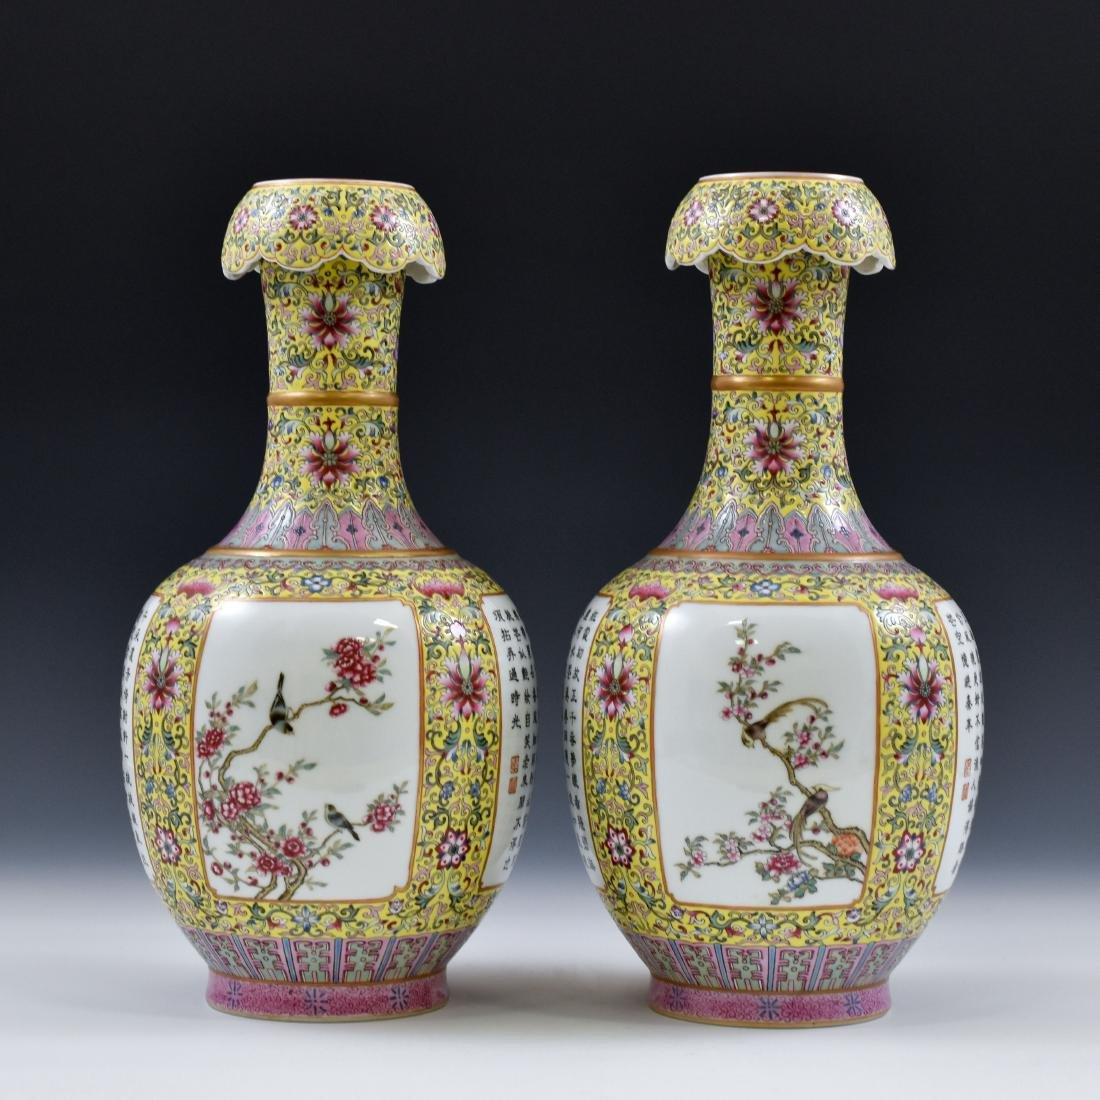 19TH C PAIR OF FAMILLE JAUNE BEGONIA PORCELAIN VASES